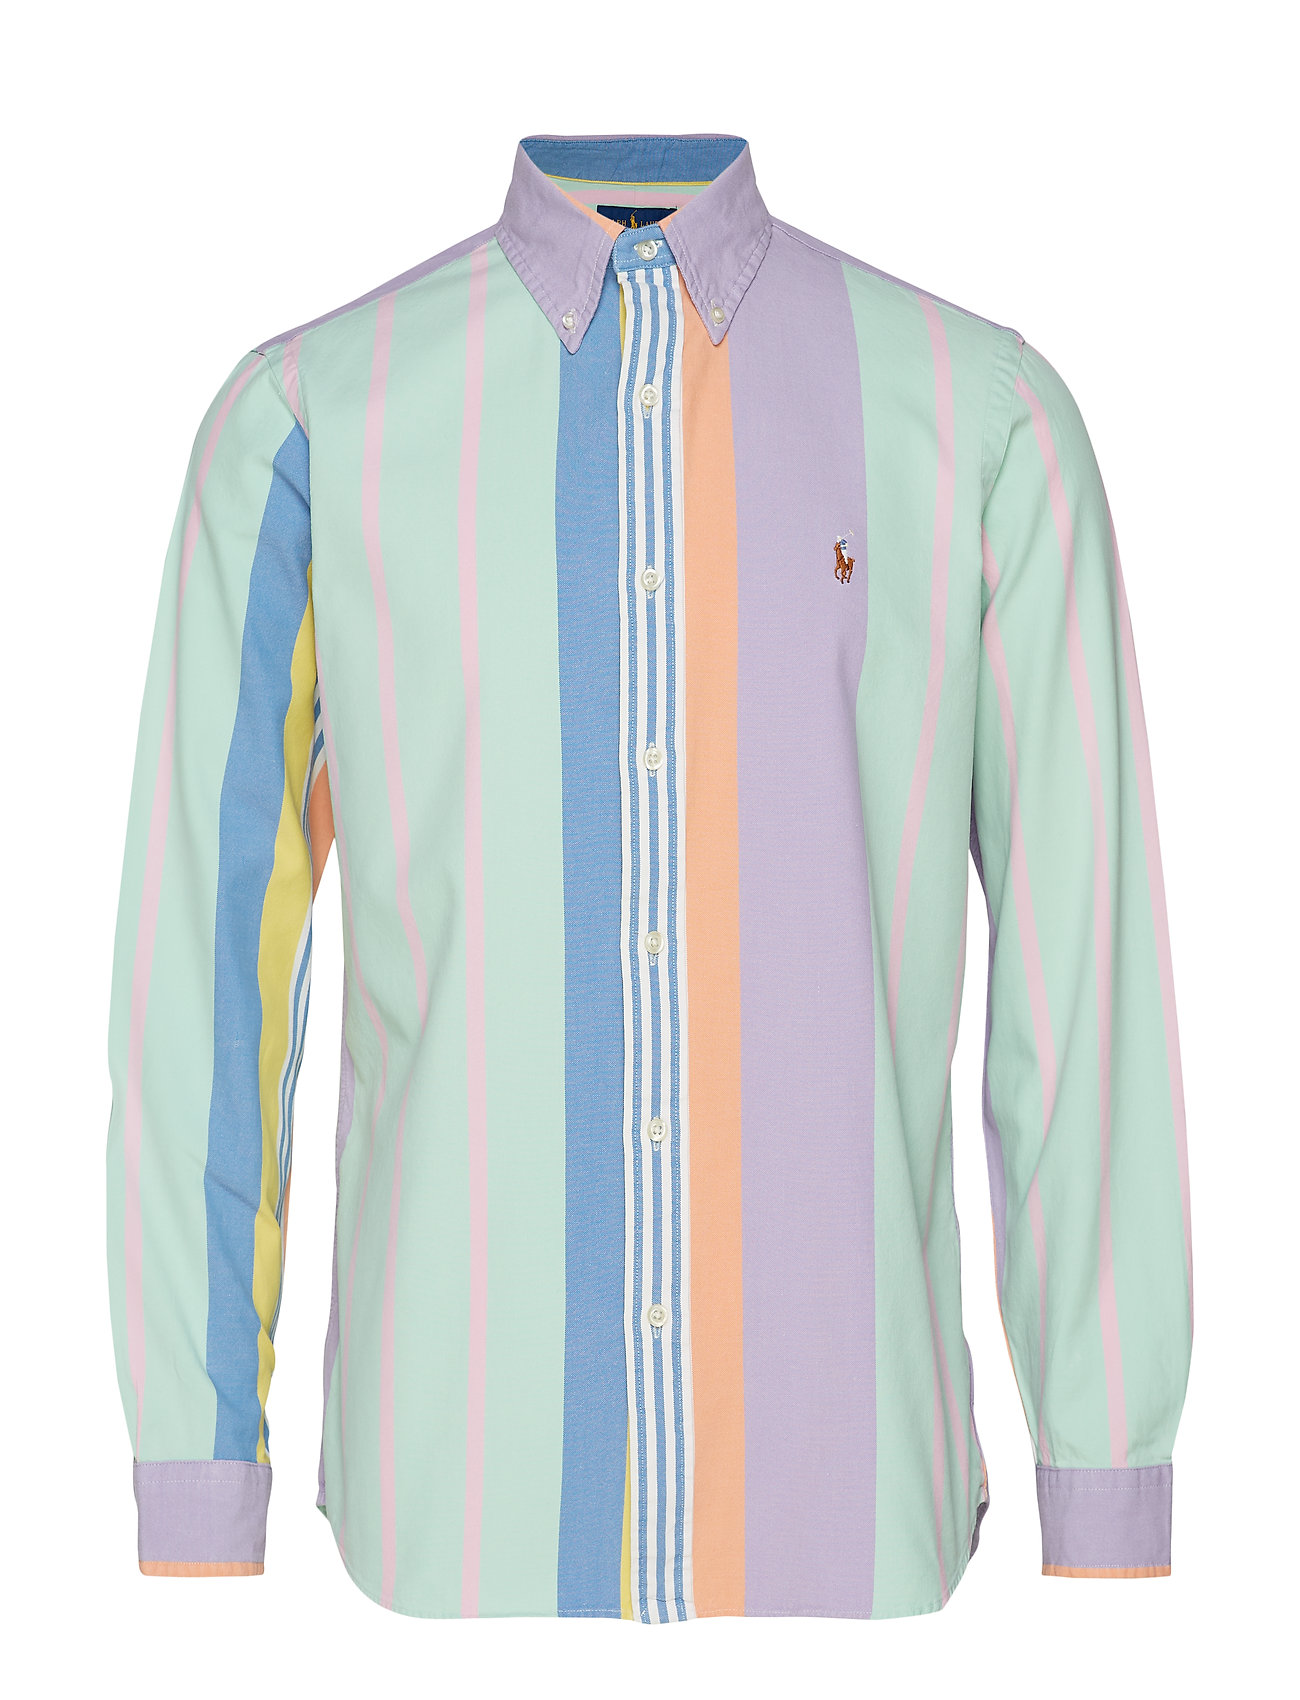 97a76d1ec Custom Fit Striped Shirt (4032 Pastel Multi) (£109) - Polo Ralph ...